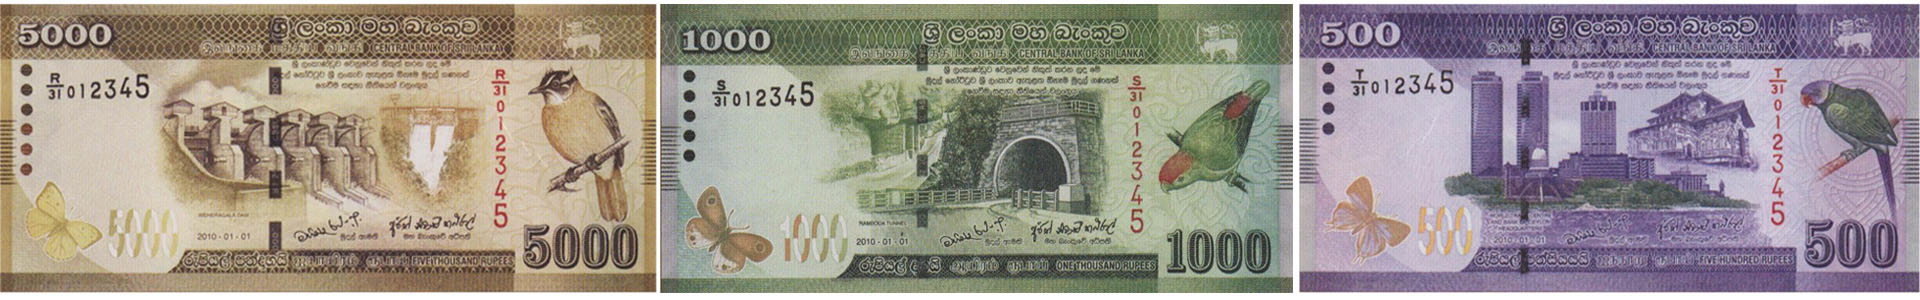 sri-lanka-currency